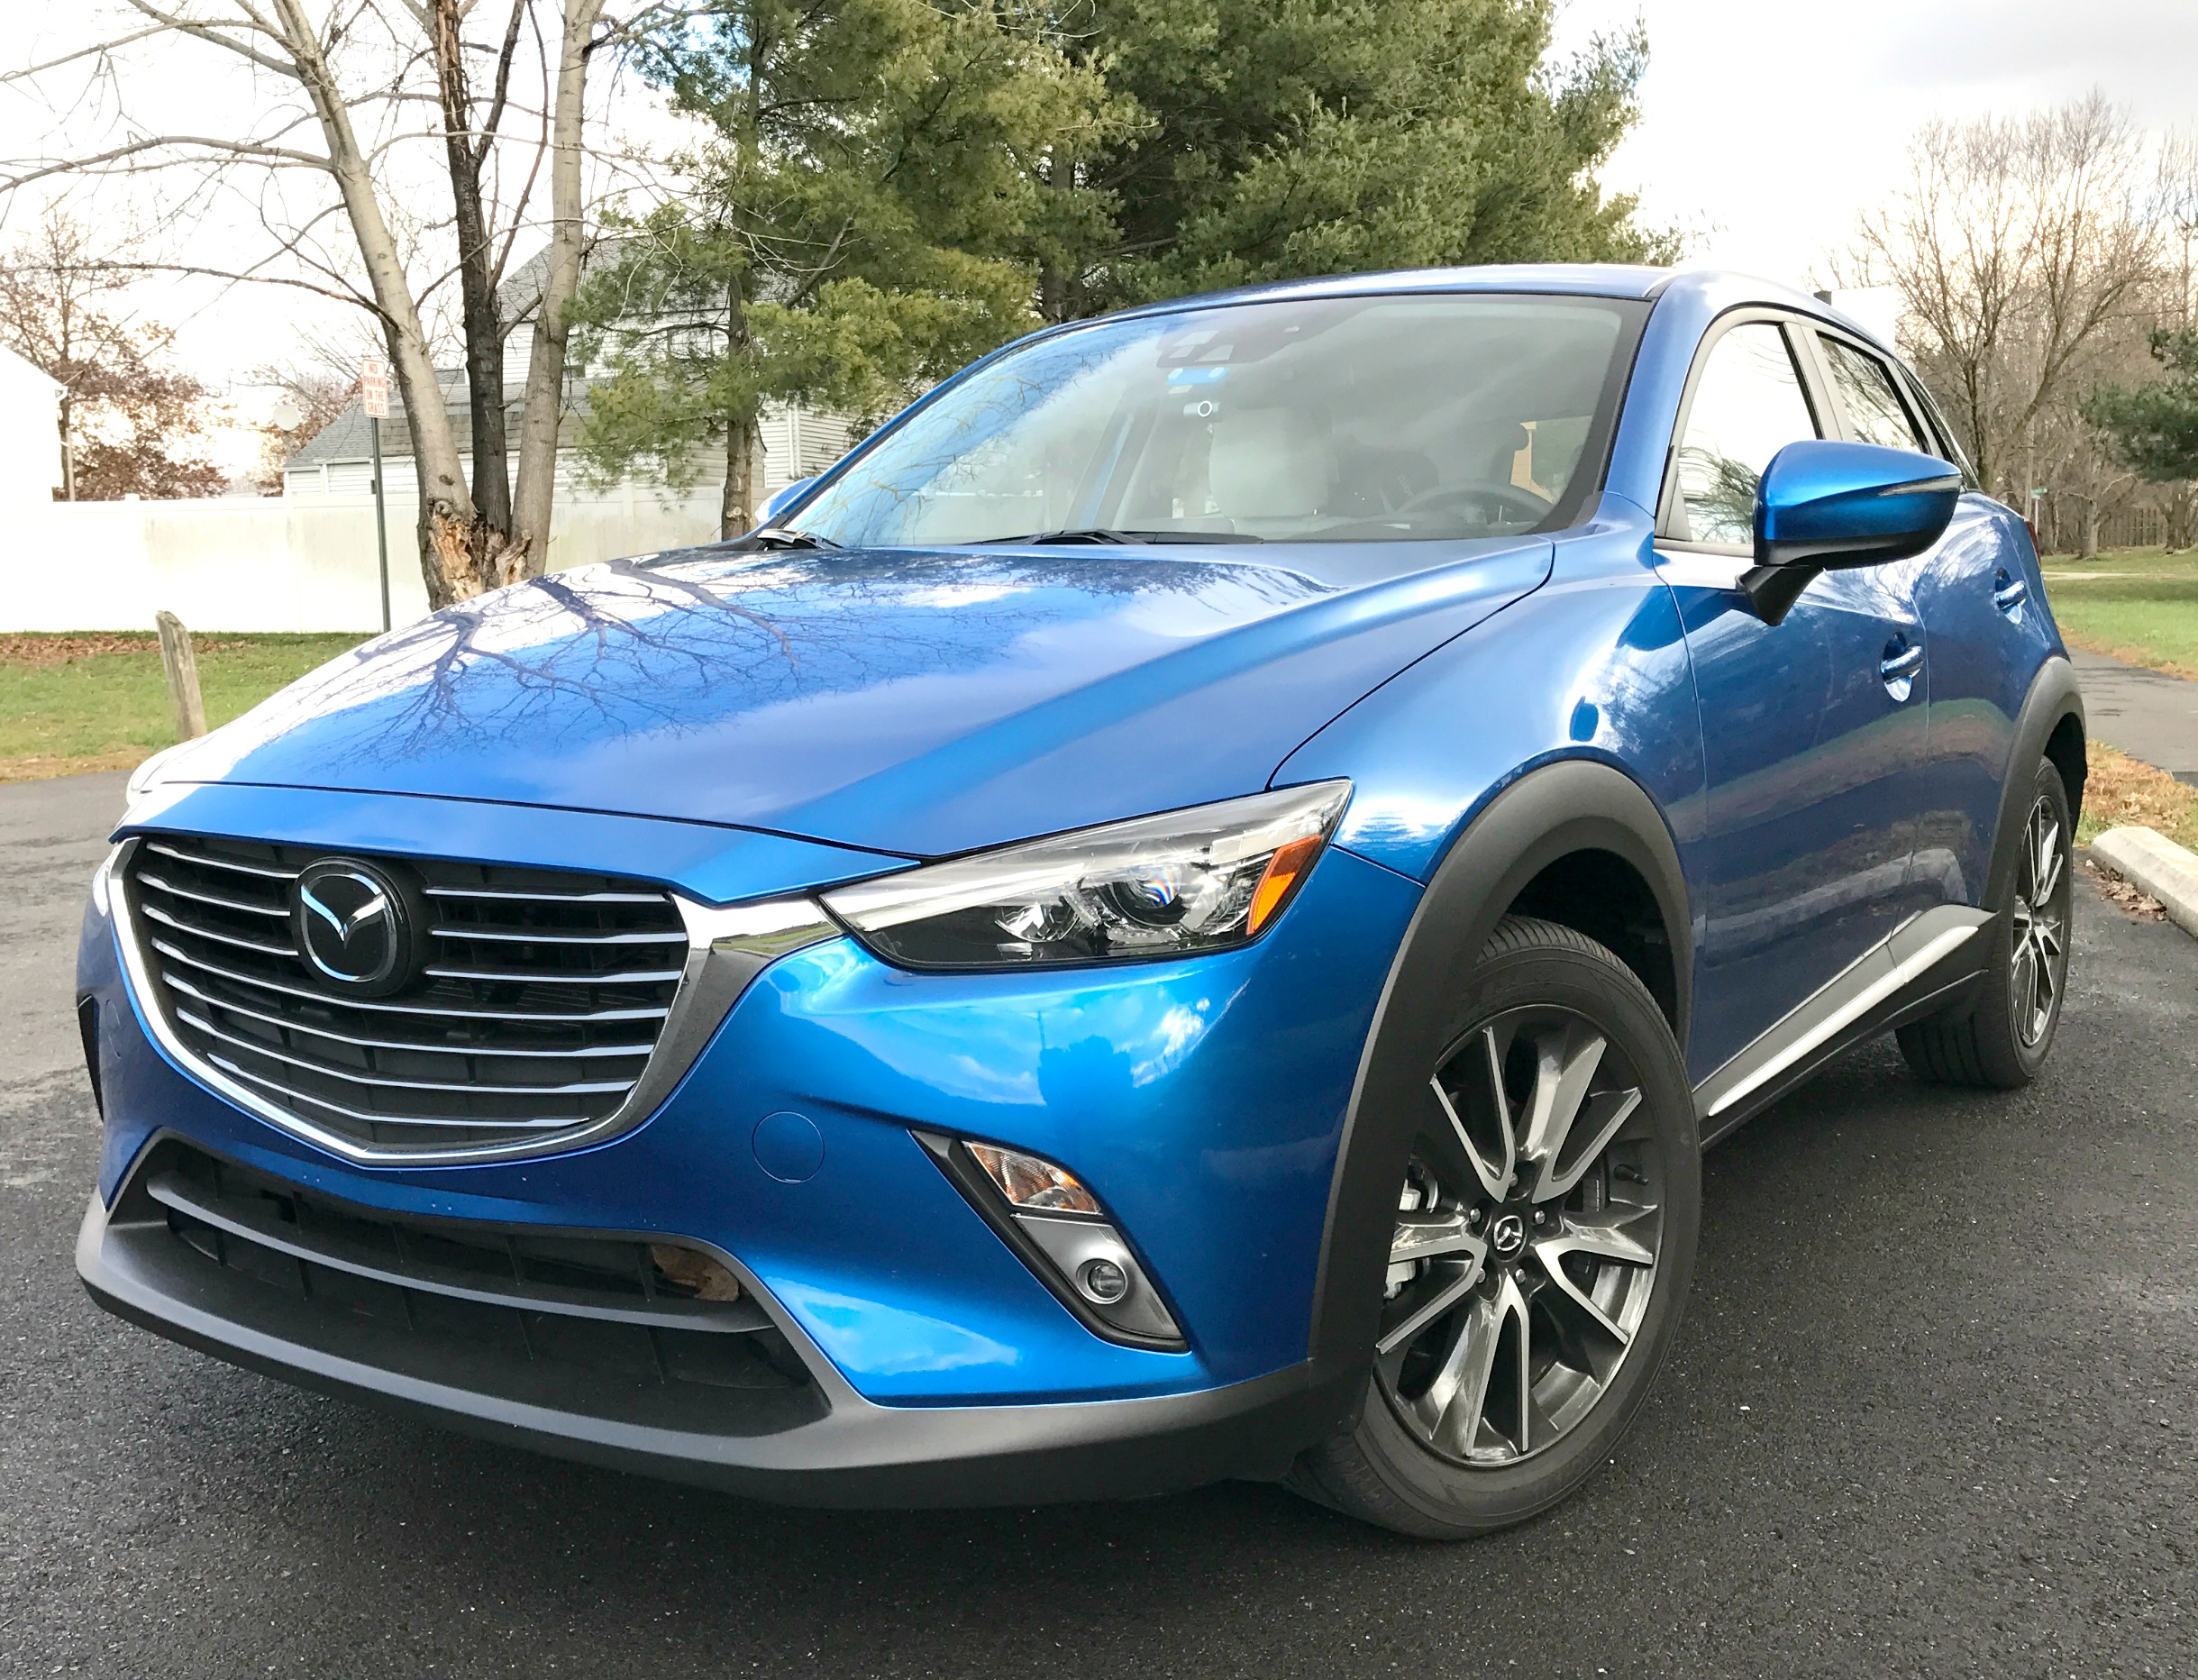 2017 mazda cx 3 subcompact crossover suv a new dawnn. Black Bedroom Furniture Sets. Home Design Ideas